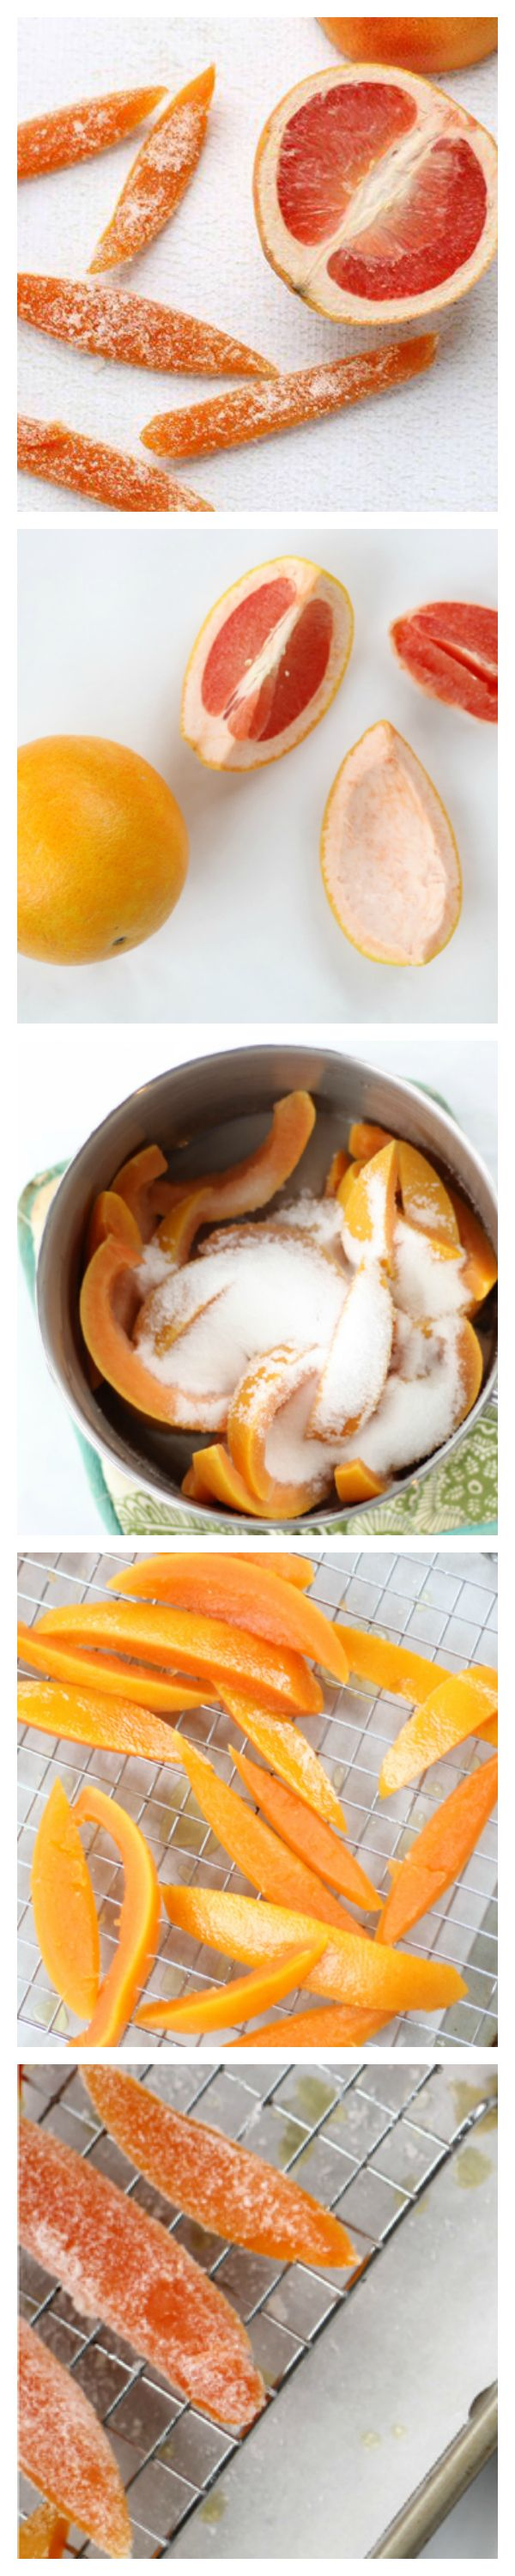 How to make Candied Grapefruit. It's easy to make your own sweet, citrusy, candied grapefruit peel. Learn how to diy yourself a sweet treat. #diy #grapefruit #candy